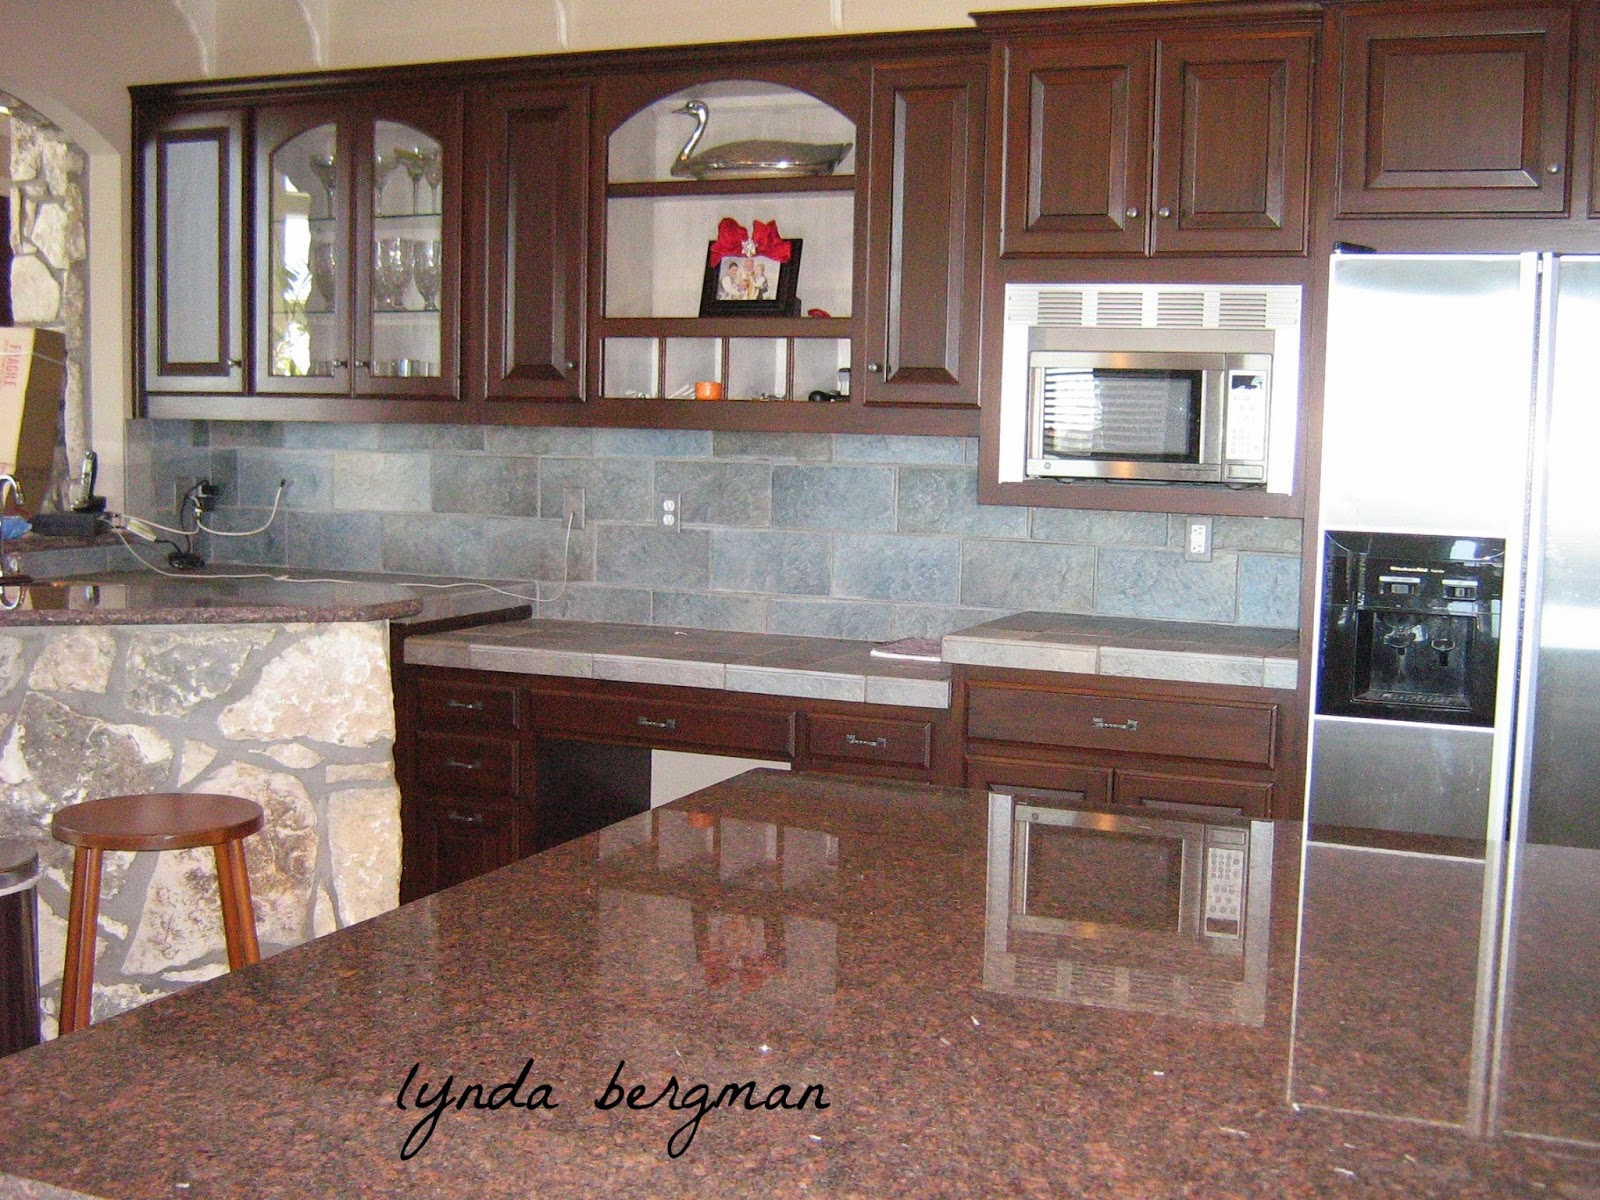 Wood Kitchen Cabinets With Painted Island Lynda Bergman Decorative Artisan White Kitchen Cabinets